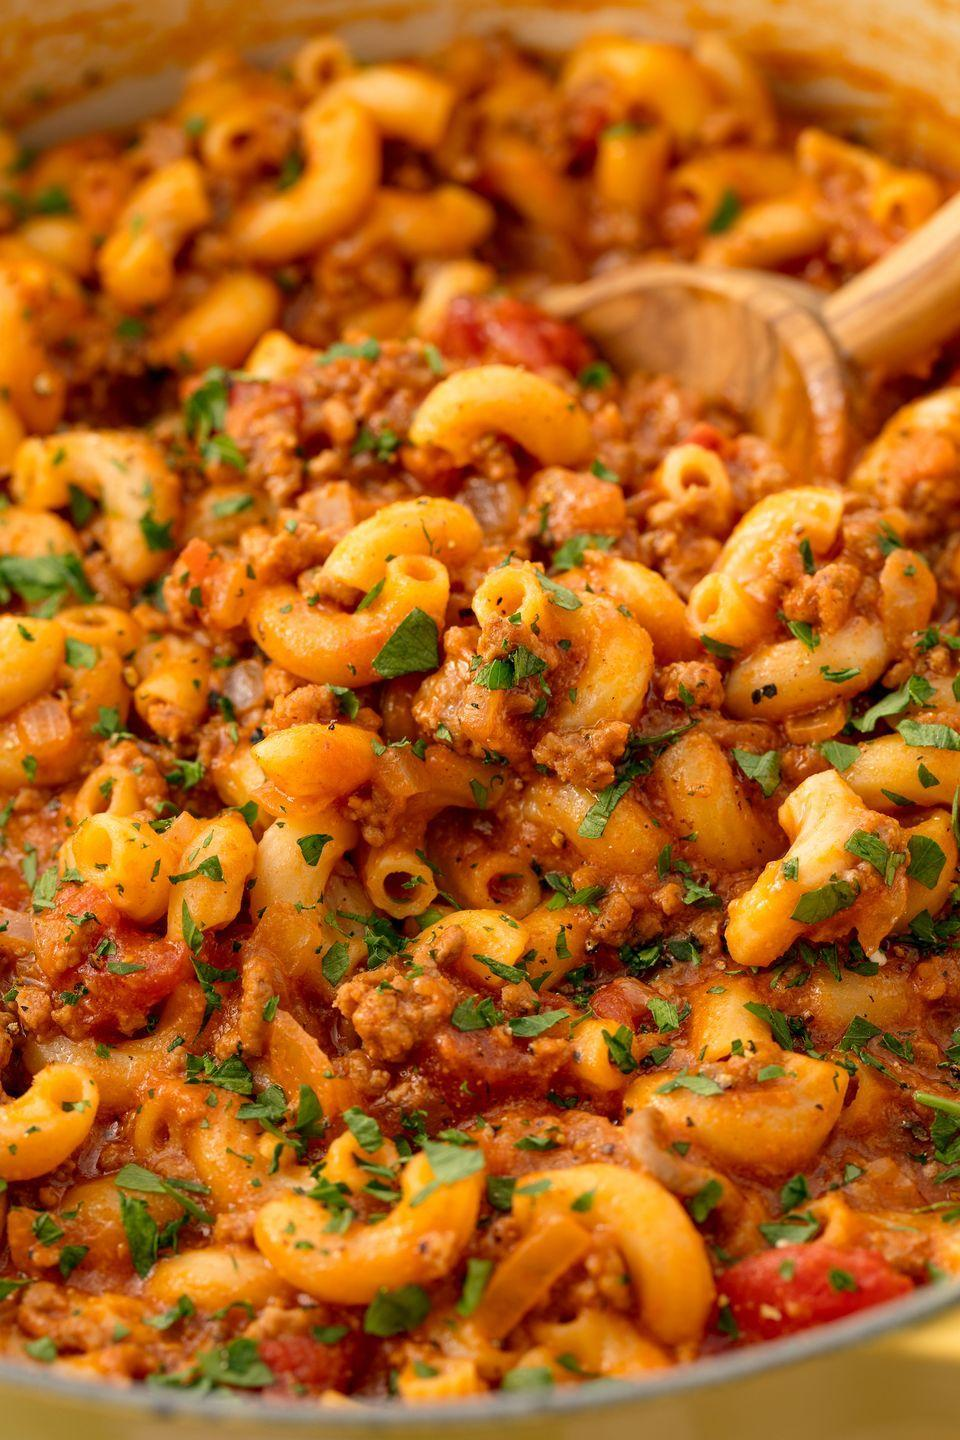 """<p>We love the fact that EVERYTHING in this recipe cooks in one skillet—the beef, the sauce, and the macaroni. Once you cook pasta this way, you'll never go back to boiling water again. </p><p>Get the <a href=""""https://www.delish.com/uk/cooking/recipes/a29496617/best-goulash-recipe/"""" rel=""""nofollow noopener"""" target=""""_blank"""" data-ylk=""""slk:Goulash"""" class=""""link rapid-noclick-resp"""">Goulash</a> recipe. </p>"""